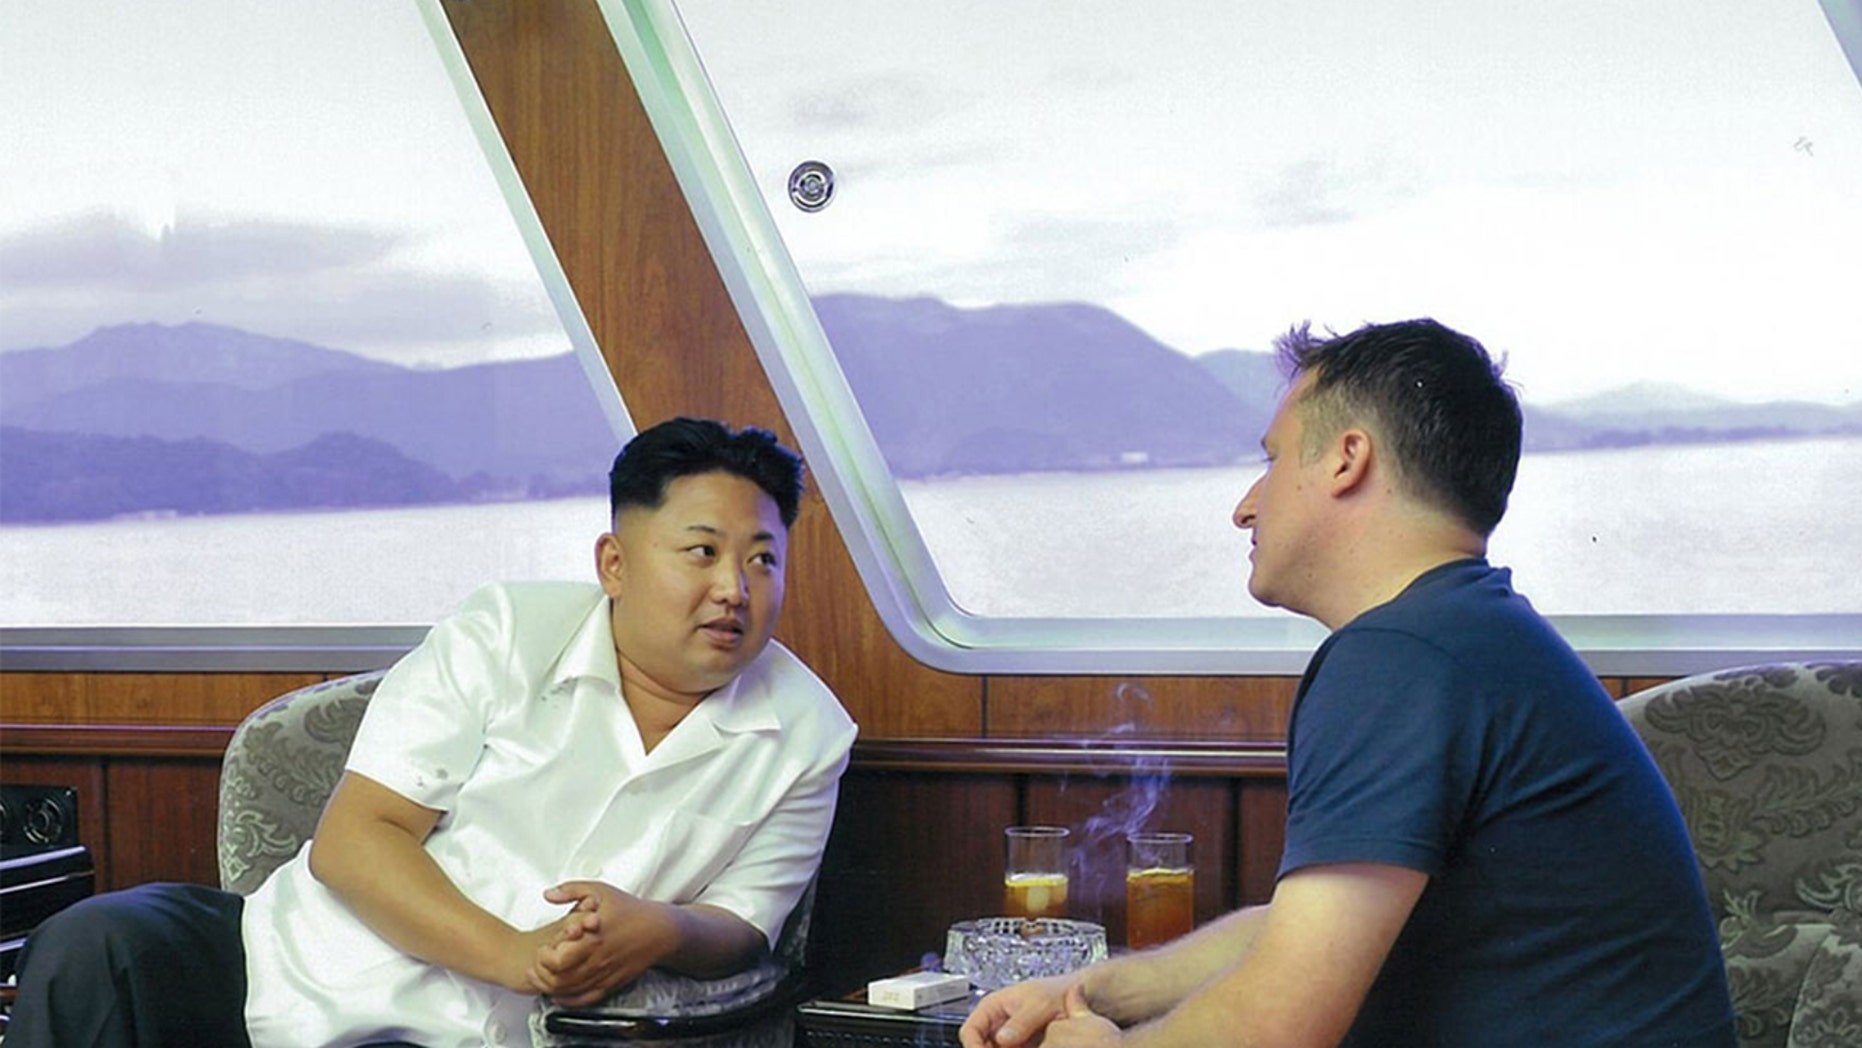 Kim Jong Un shares cocktails with Michael Spavor of the Paektu Cultural Exchange on board the North Korean leader's private yacht in Wonsan North Korea in 2013